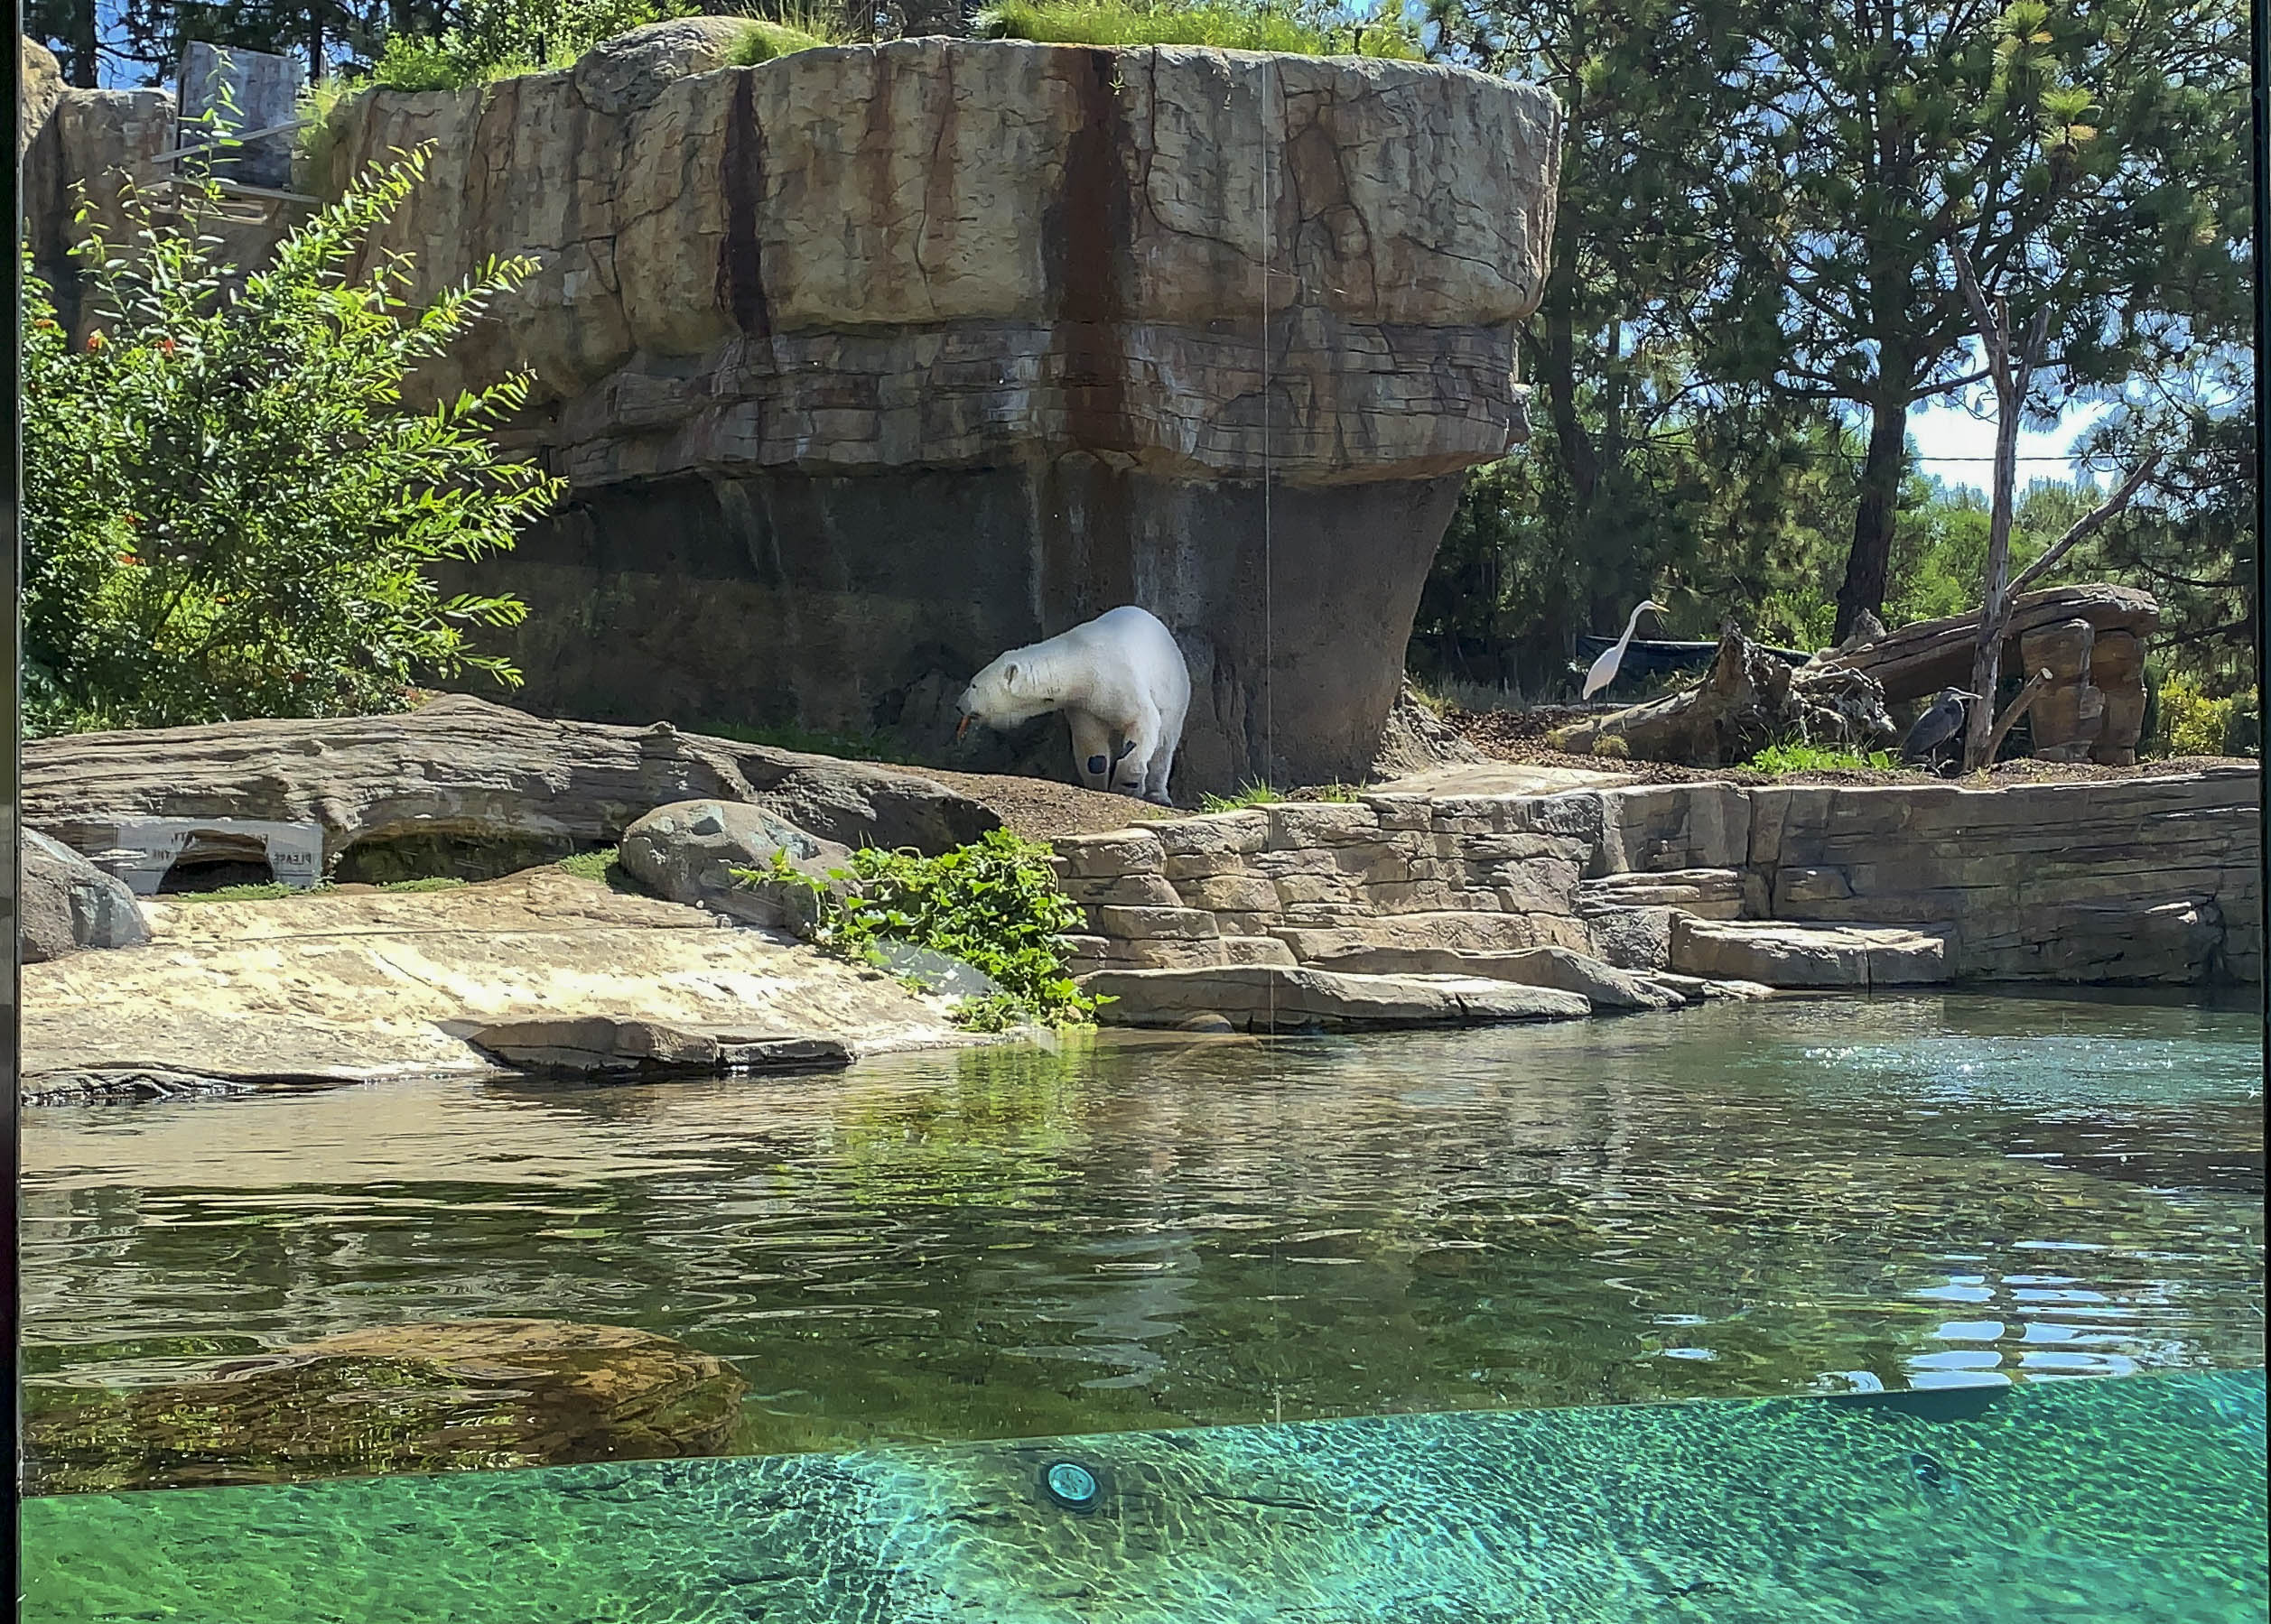 A polar bear, one of the most popular San Diego Zoo animals, eats a carrot in the shade.